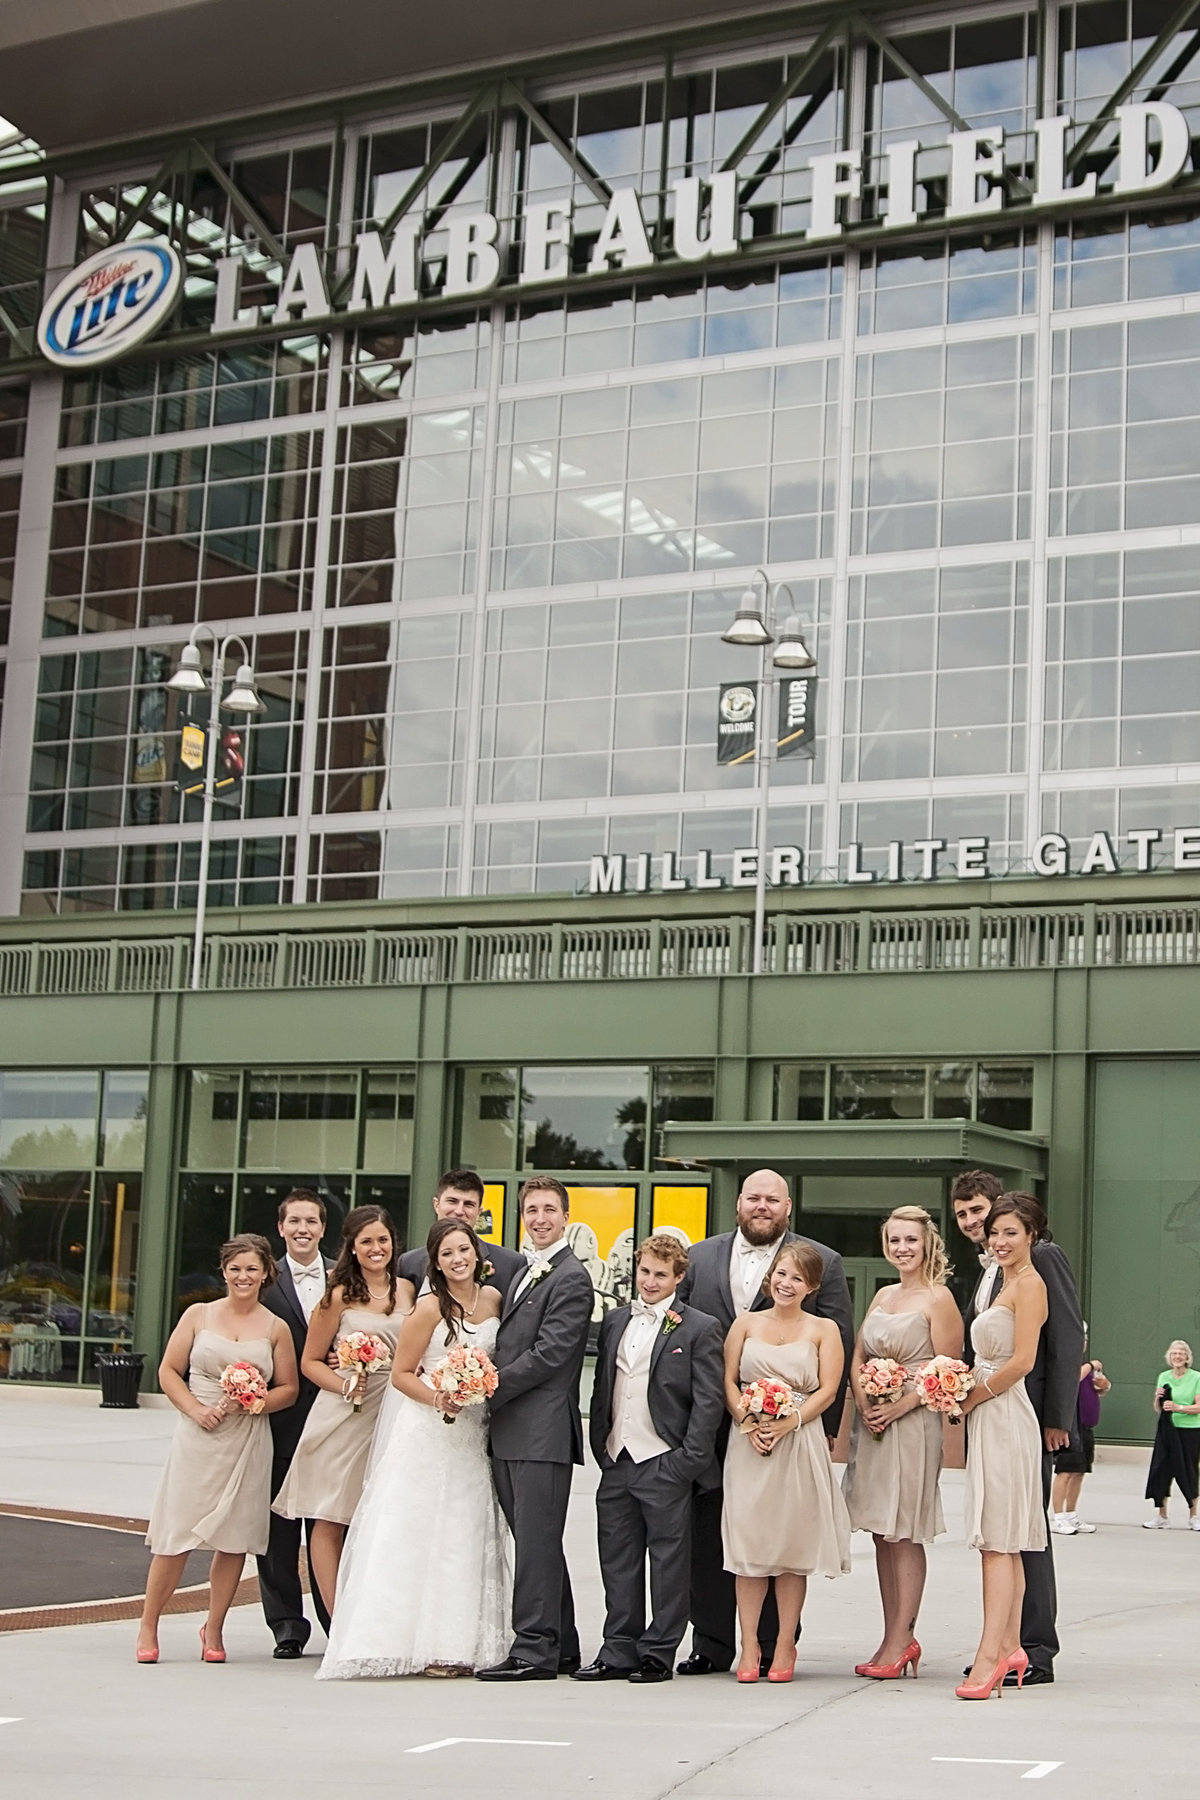 Elegant wedding at Lambeau Field by Casi Lea Photography-green bay wedding photographer-door county wedding photographer-milwaukee wedding photographer-appleton wedding photographer-wisconsin weddings